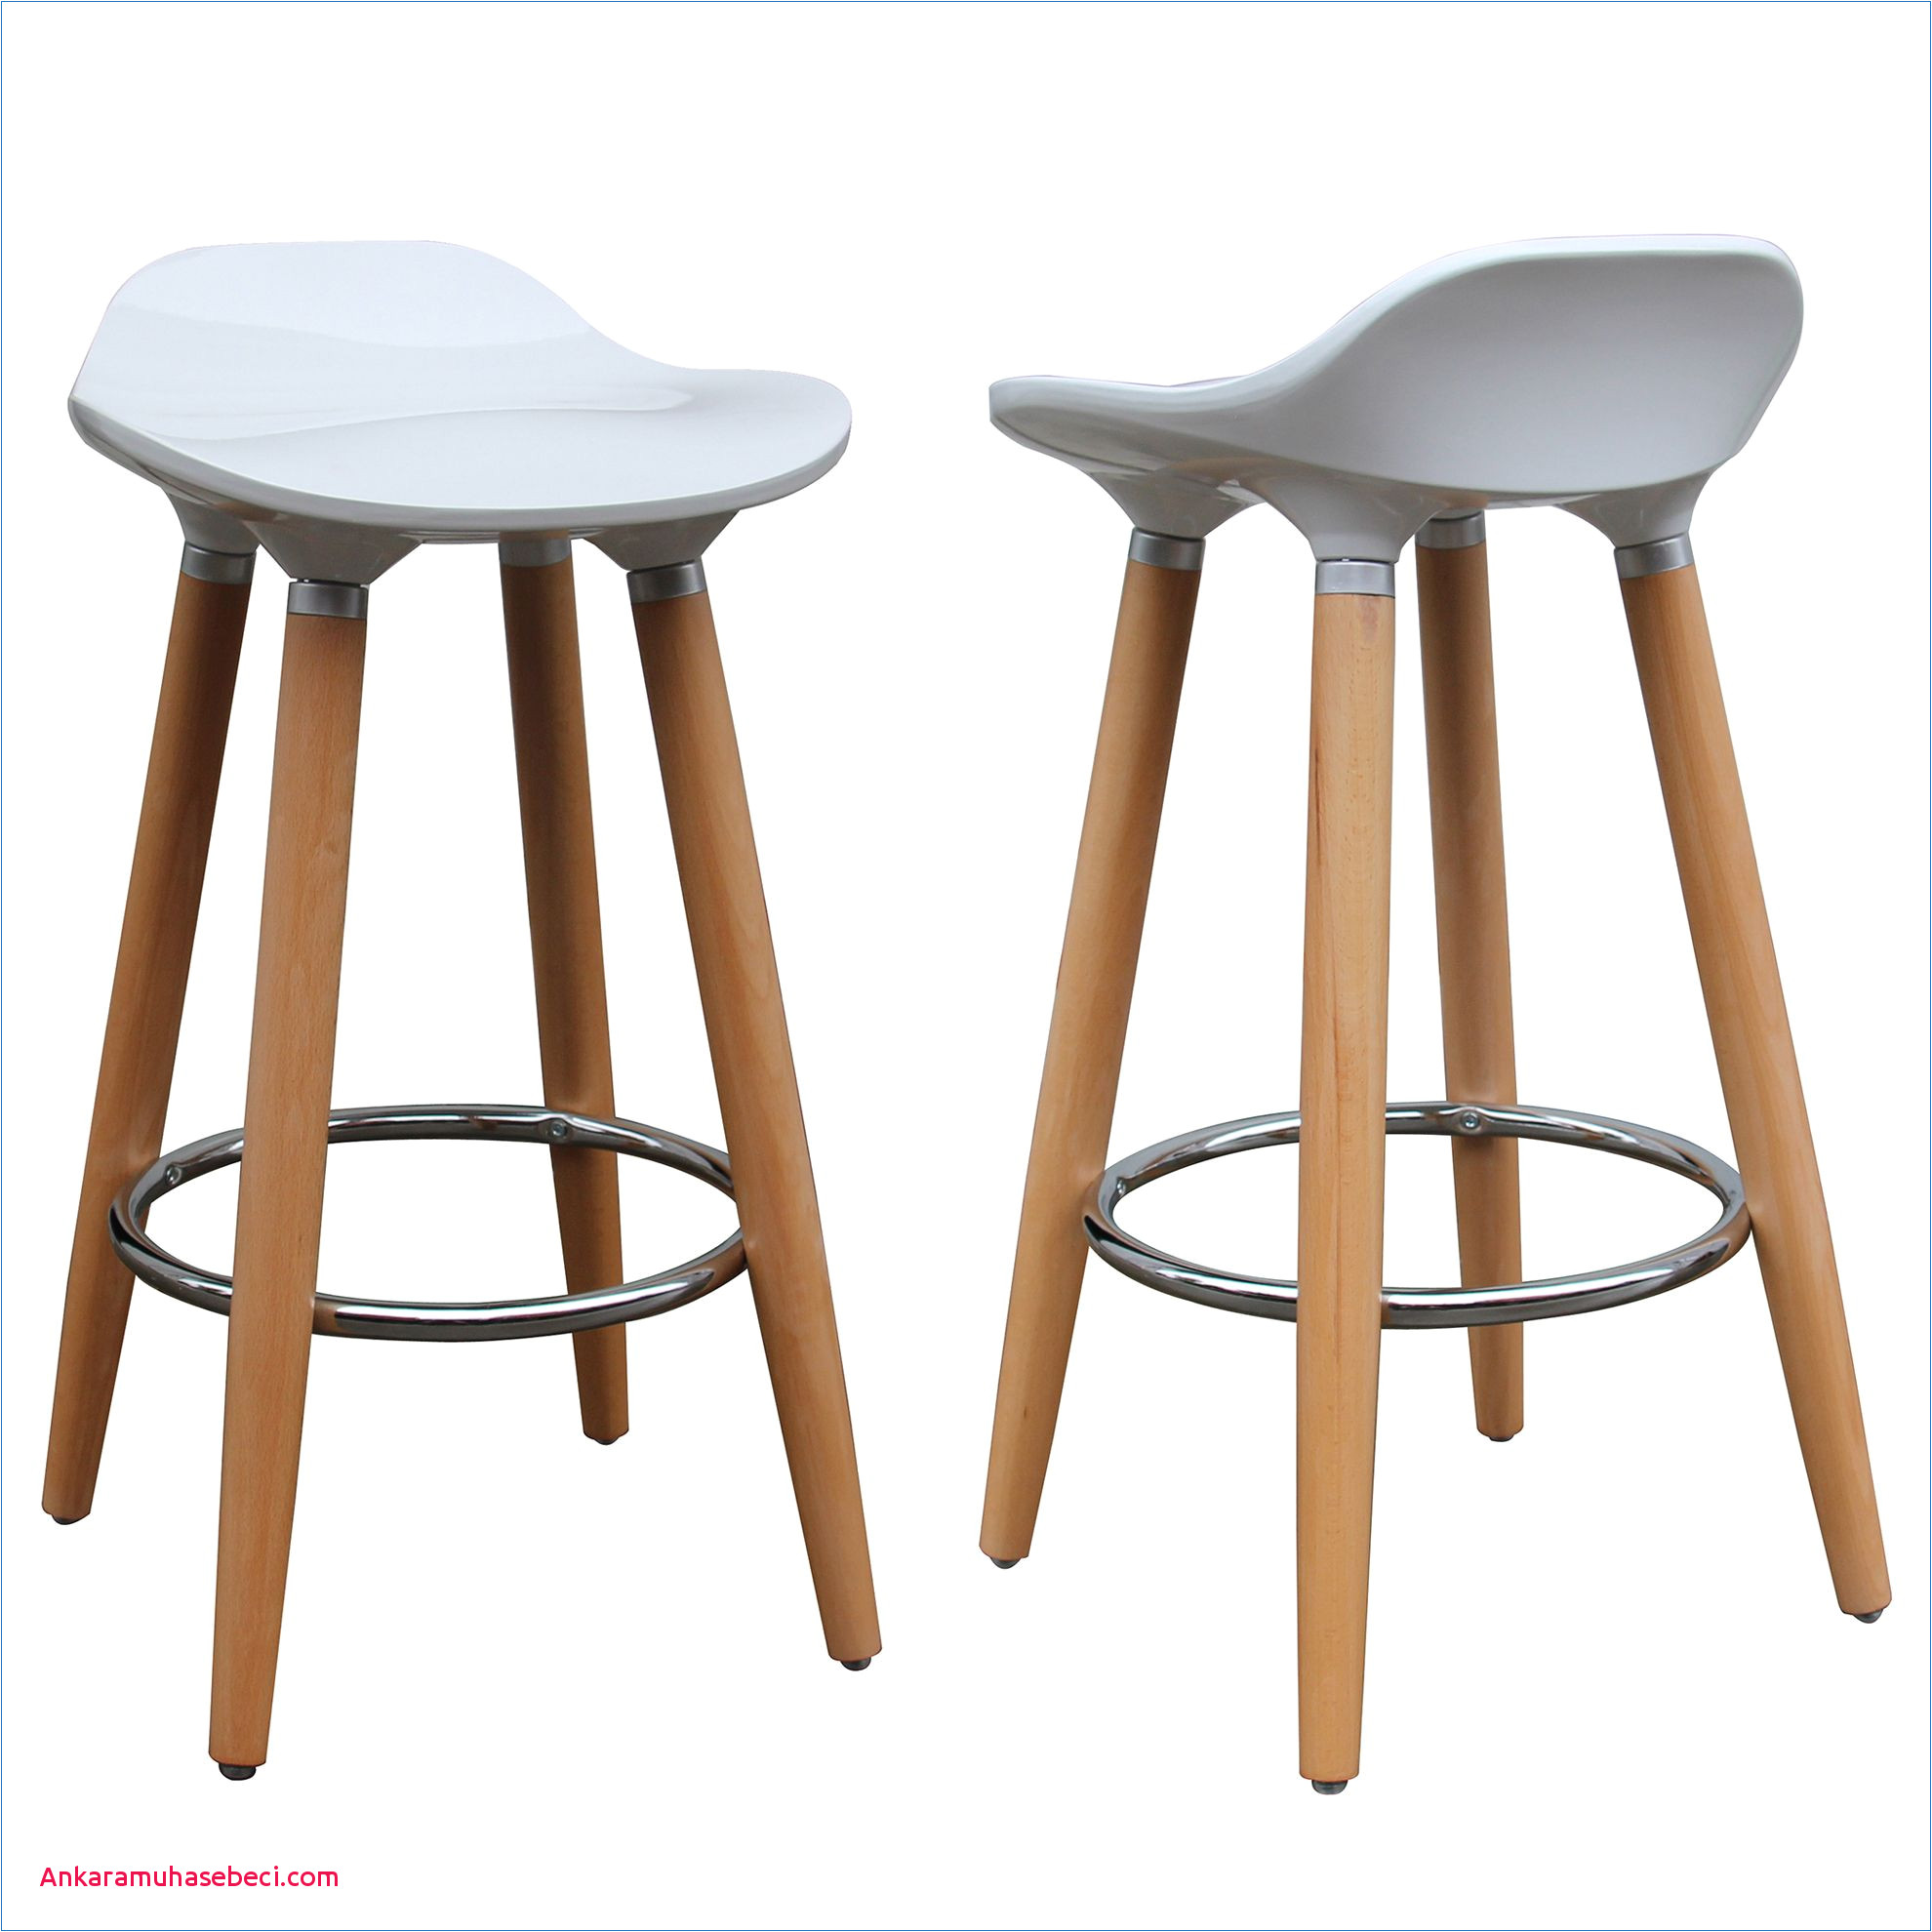 Bar Stool Height for 48 Inch Counter Elegant Modern Kitchen Bar Stools Ankaramuhasebeci Com